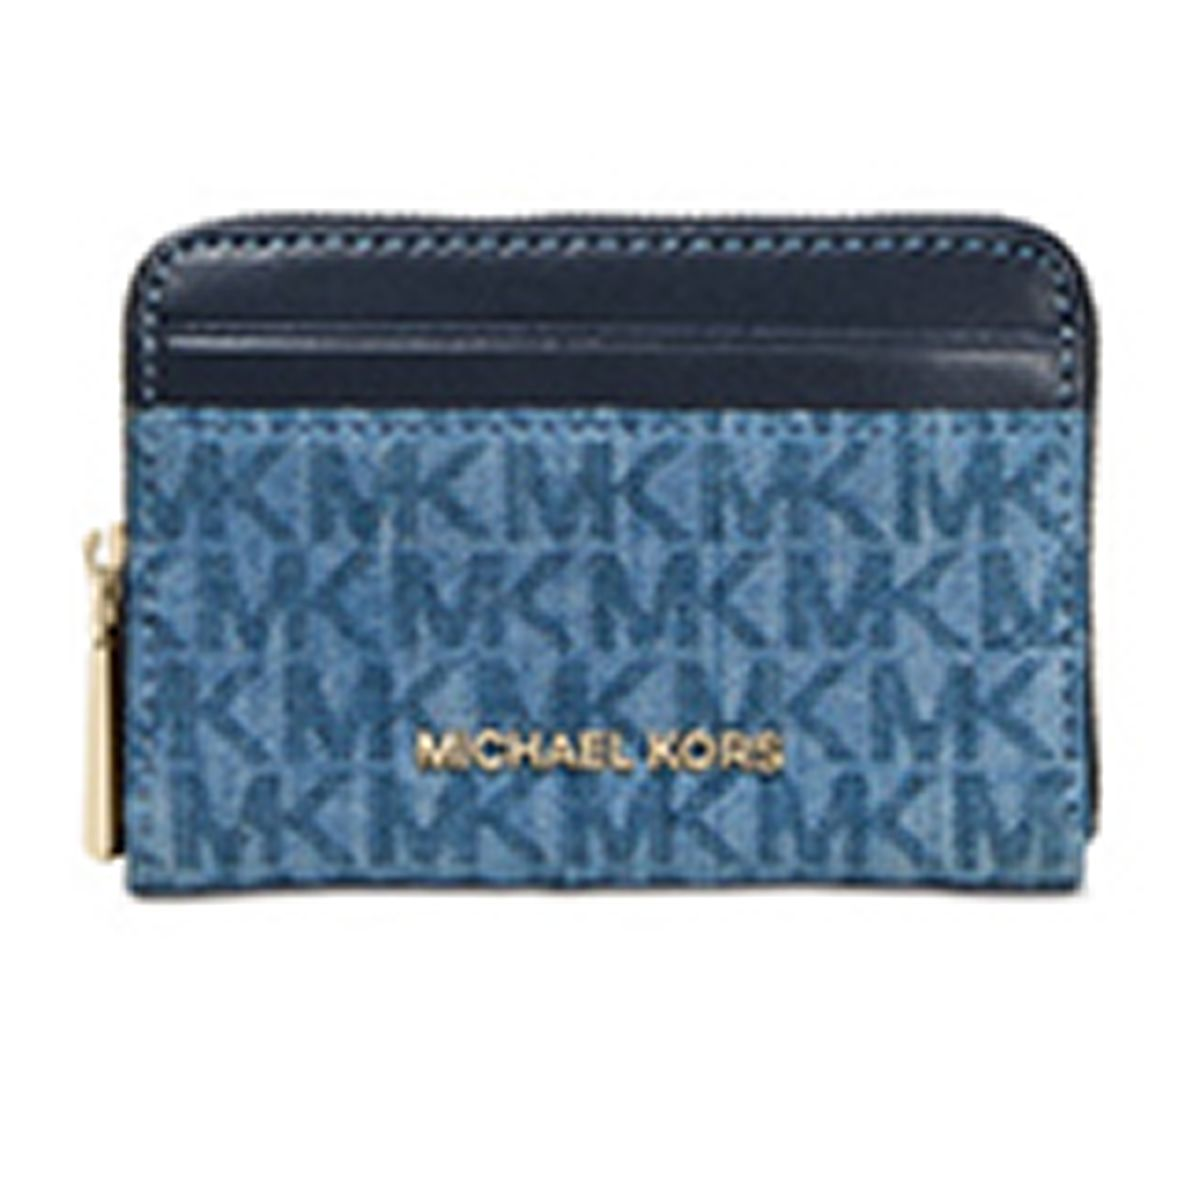 e3cf8b01784be8 Michael Kors Designer Wallets for Women - Macy's